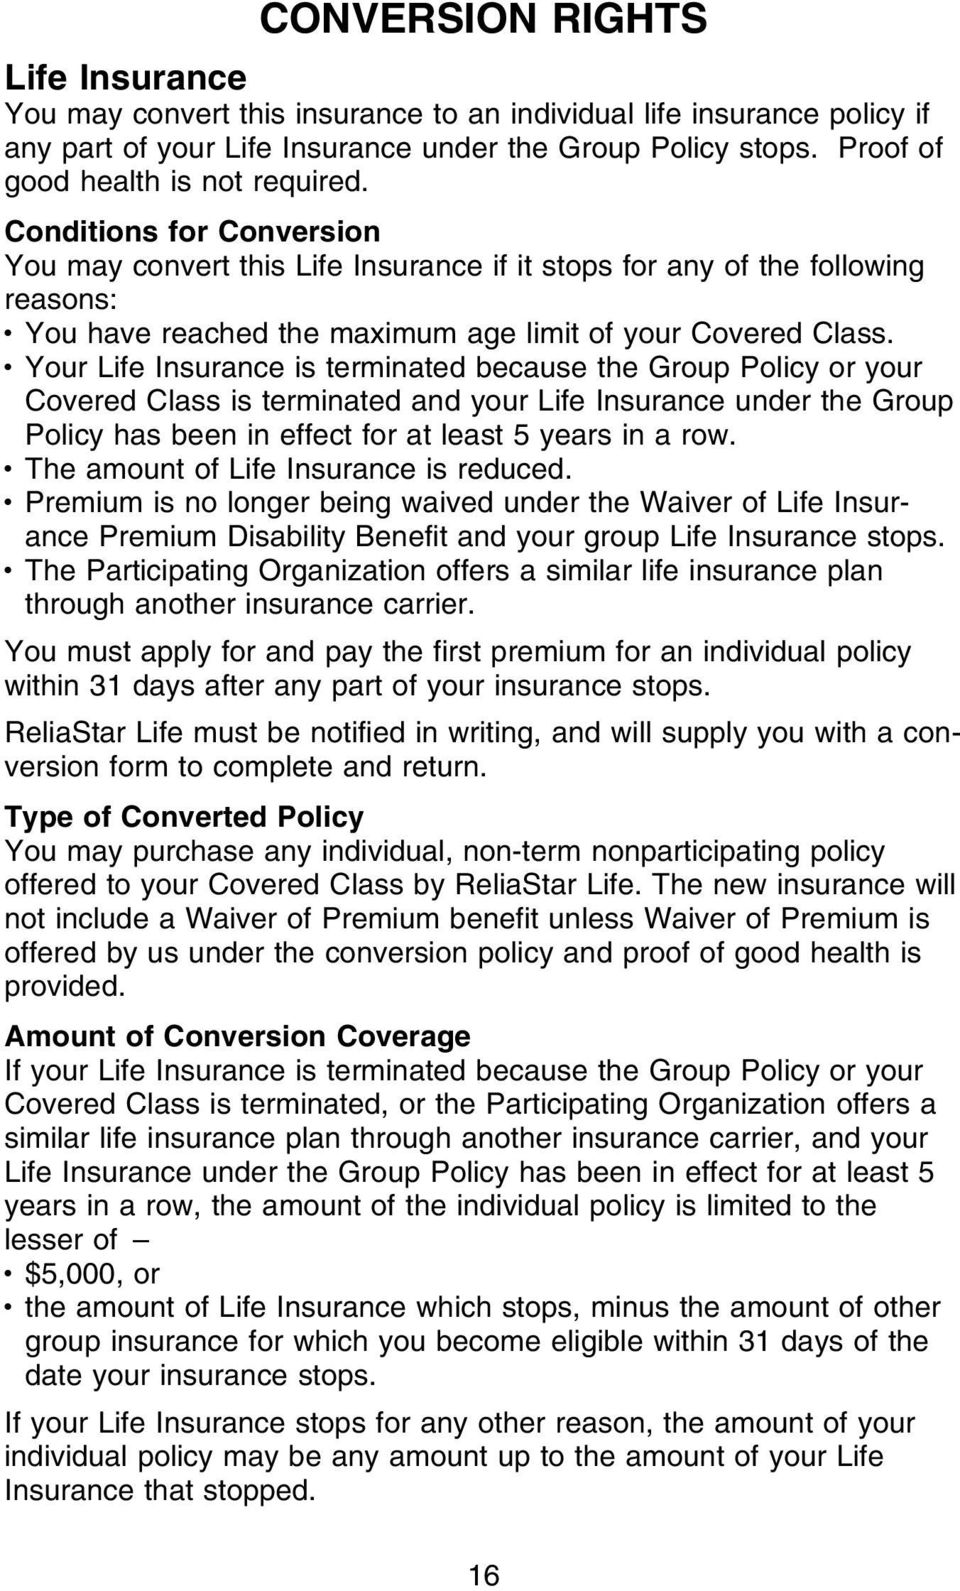 Conditions for Conversion You may convert this Life Insurance if it stops for any of the following reasons: You have reached the maximum age limit of your Covered Class.